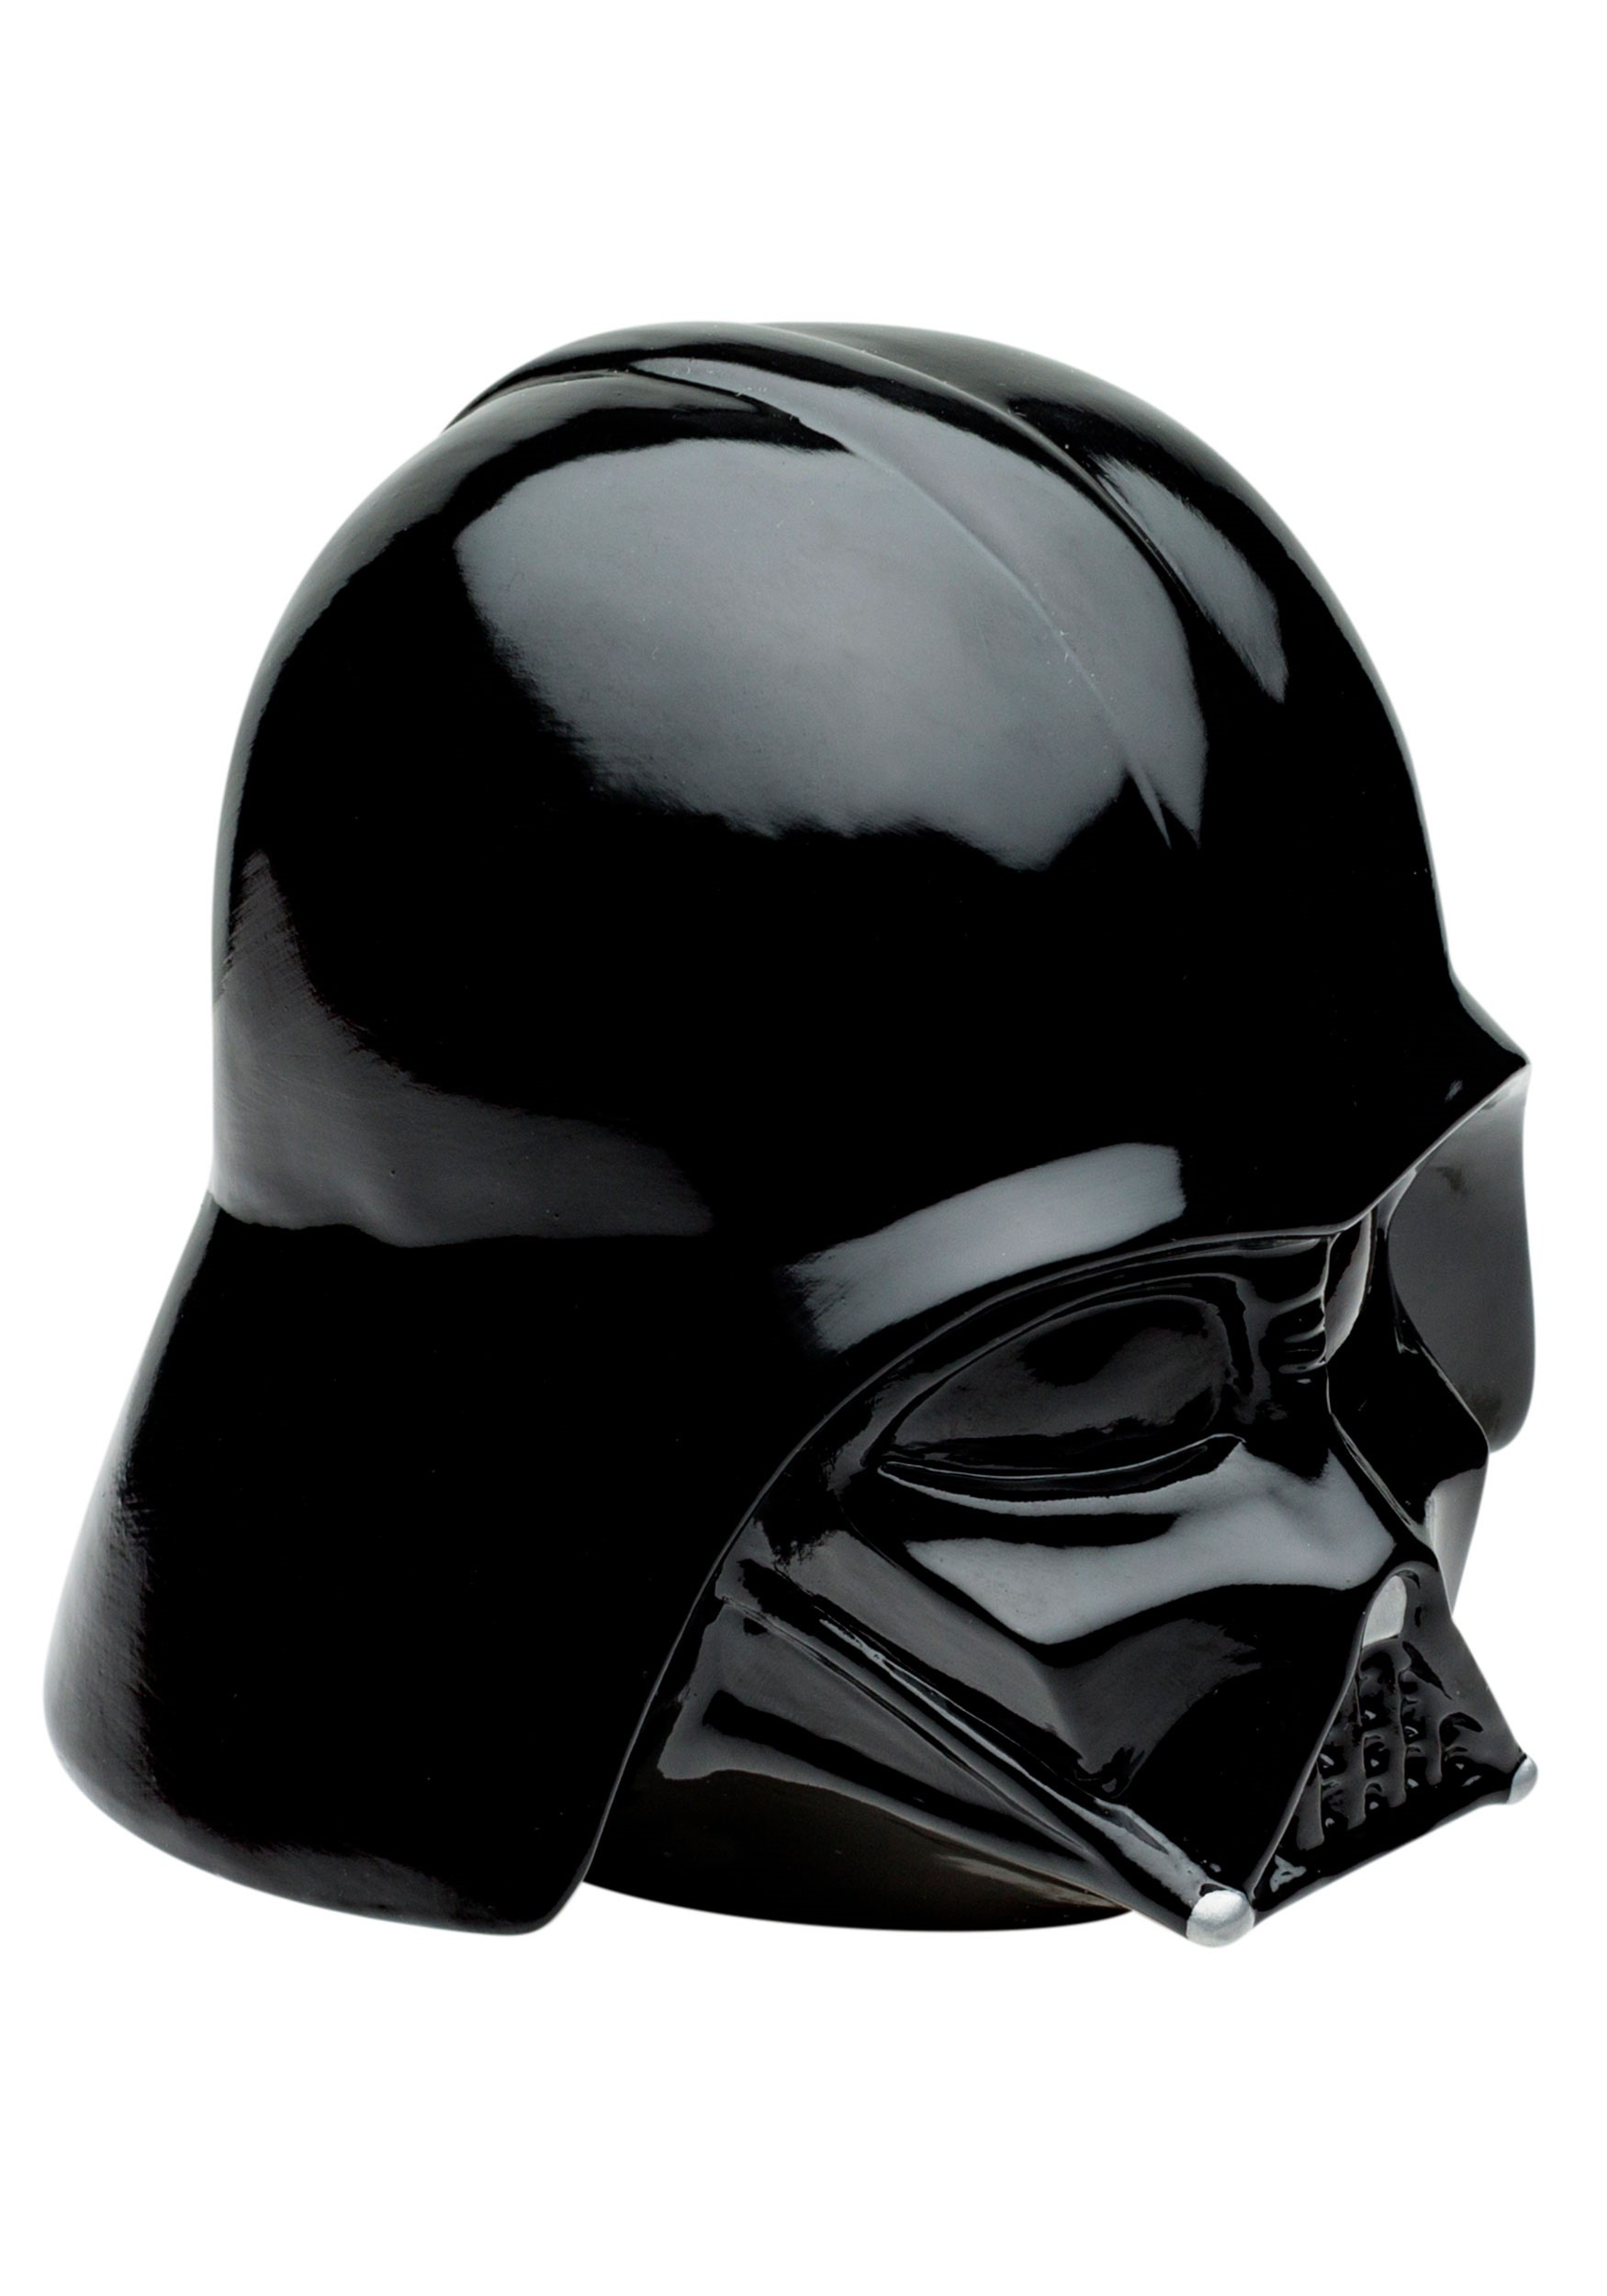 Star Wars Darth Vader Ceramic Bank ZKSWRD-0972